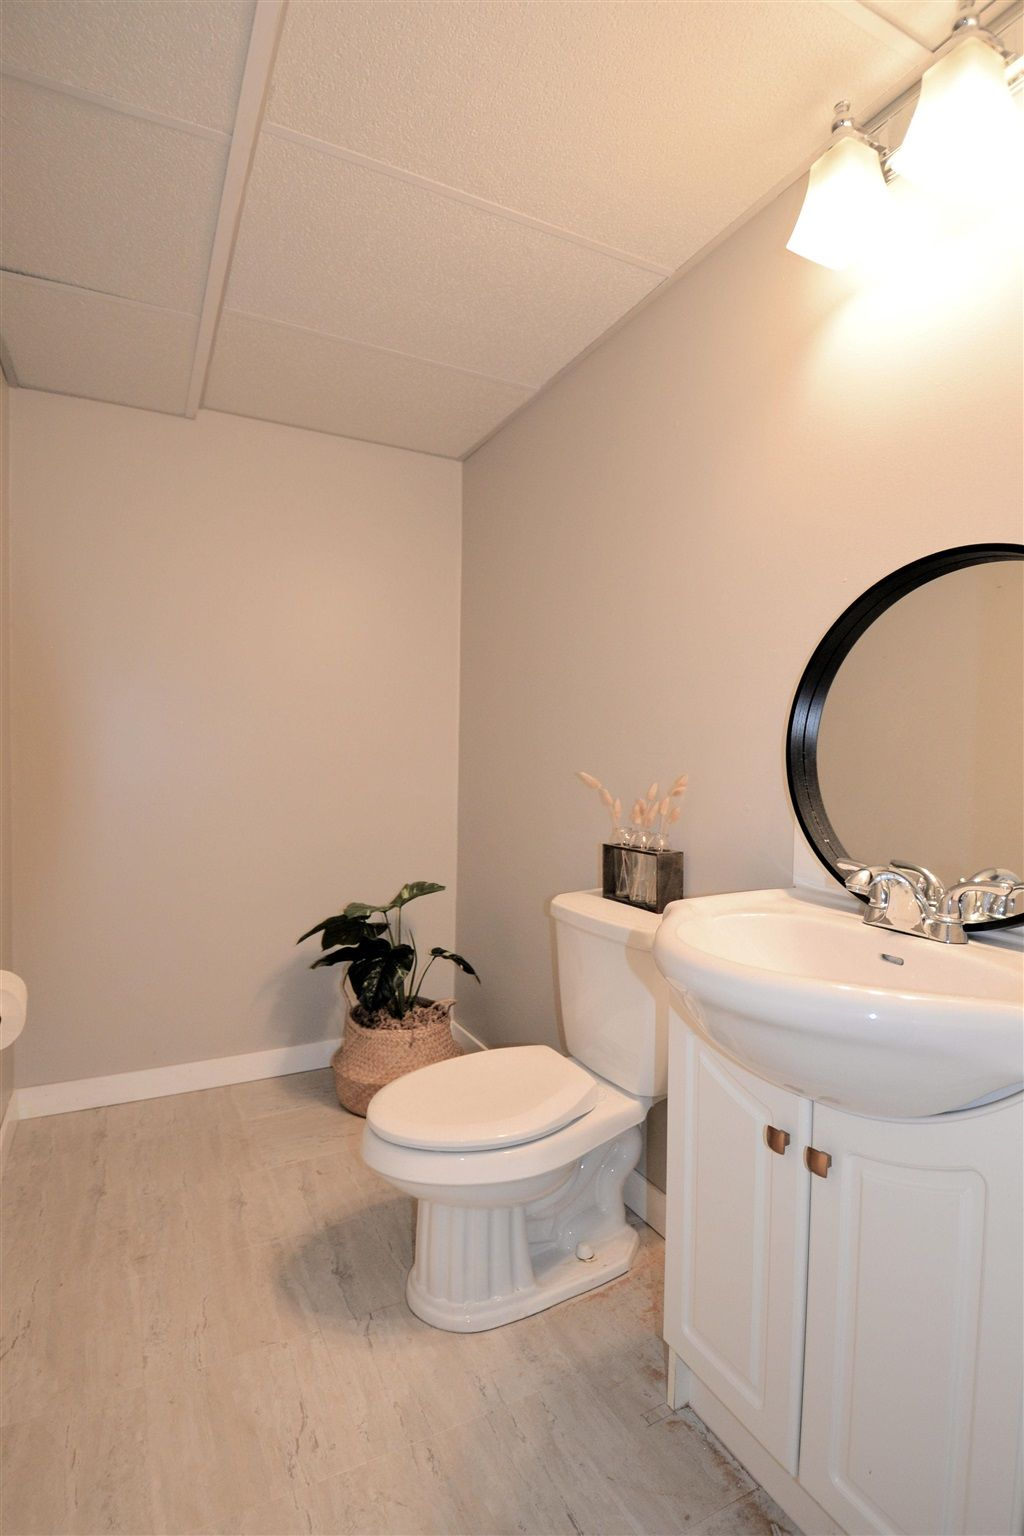 Photo 21: Photos: 2045 CROFT Road in Prince George: Ingala House for sale (PG City North (Zone 73))  : MLS®# R2600190